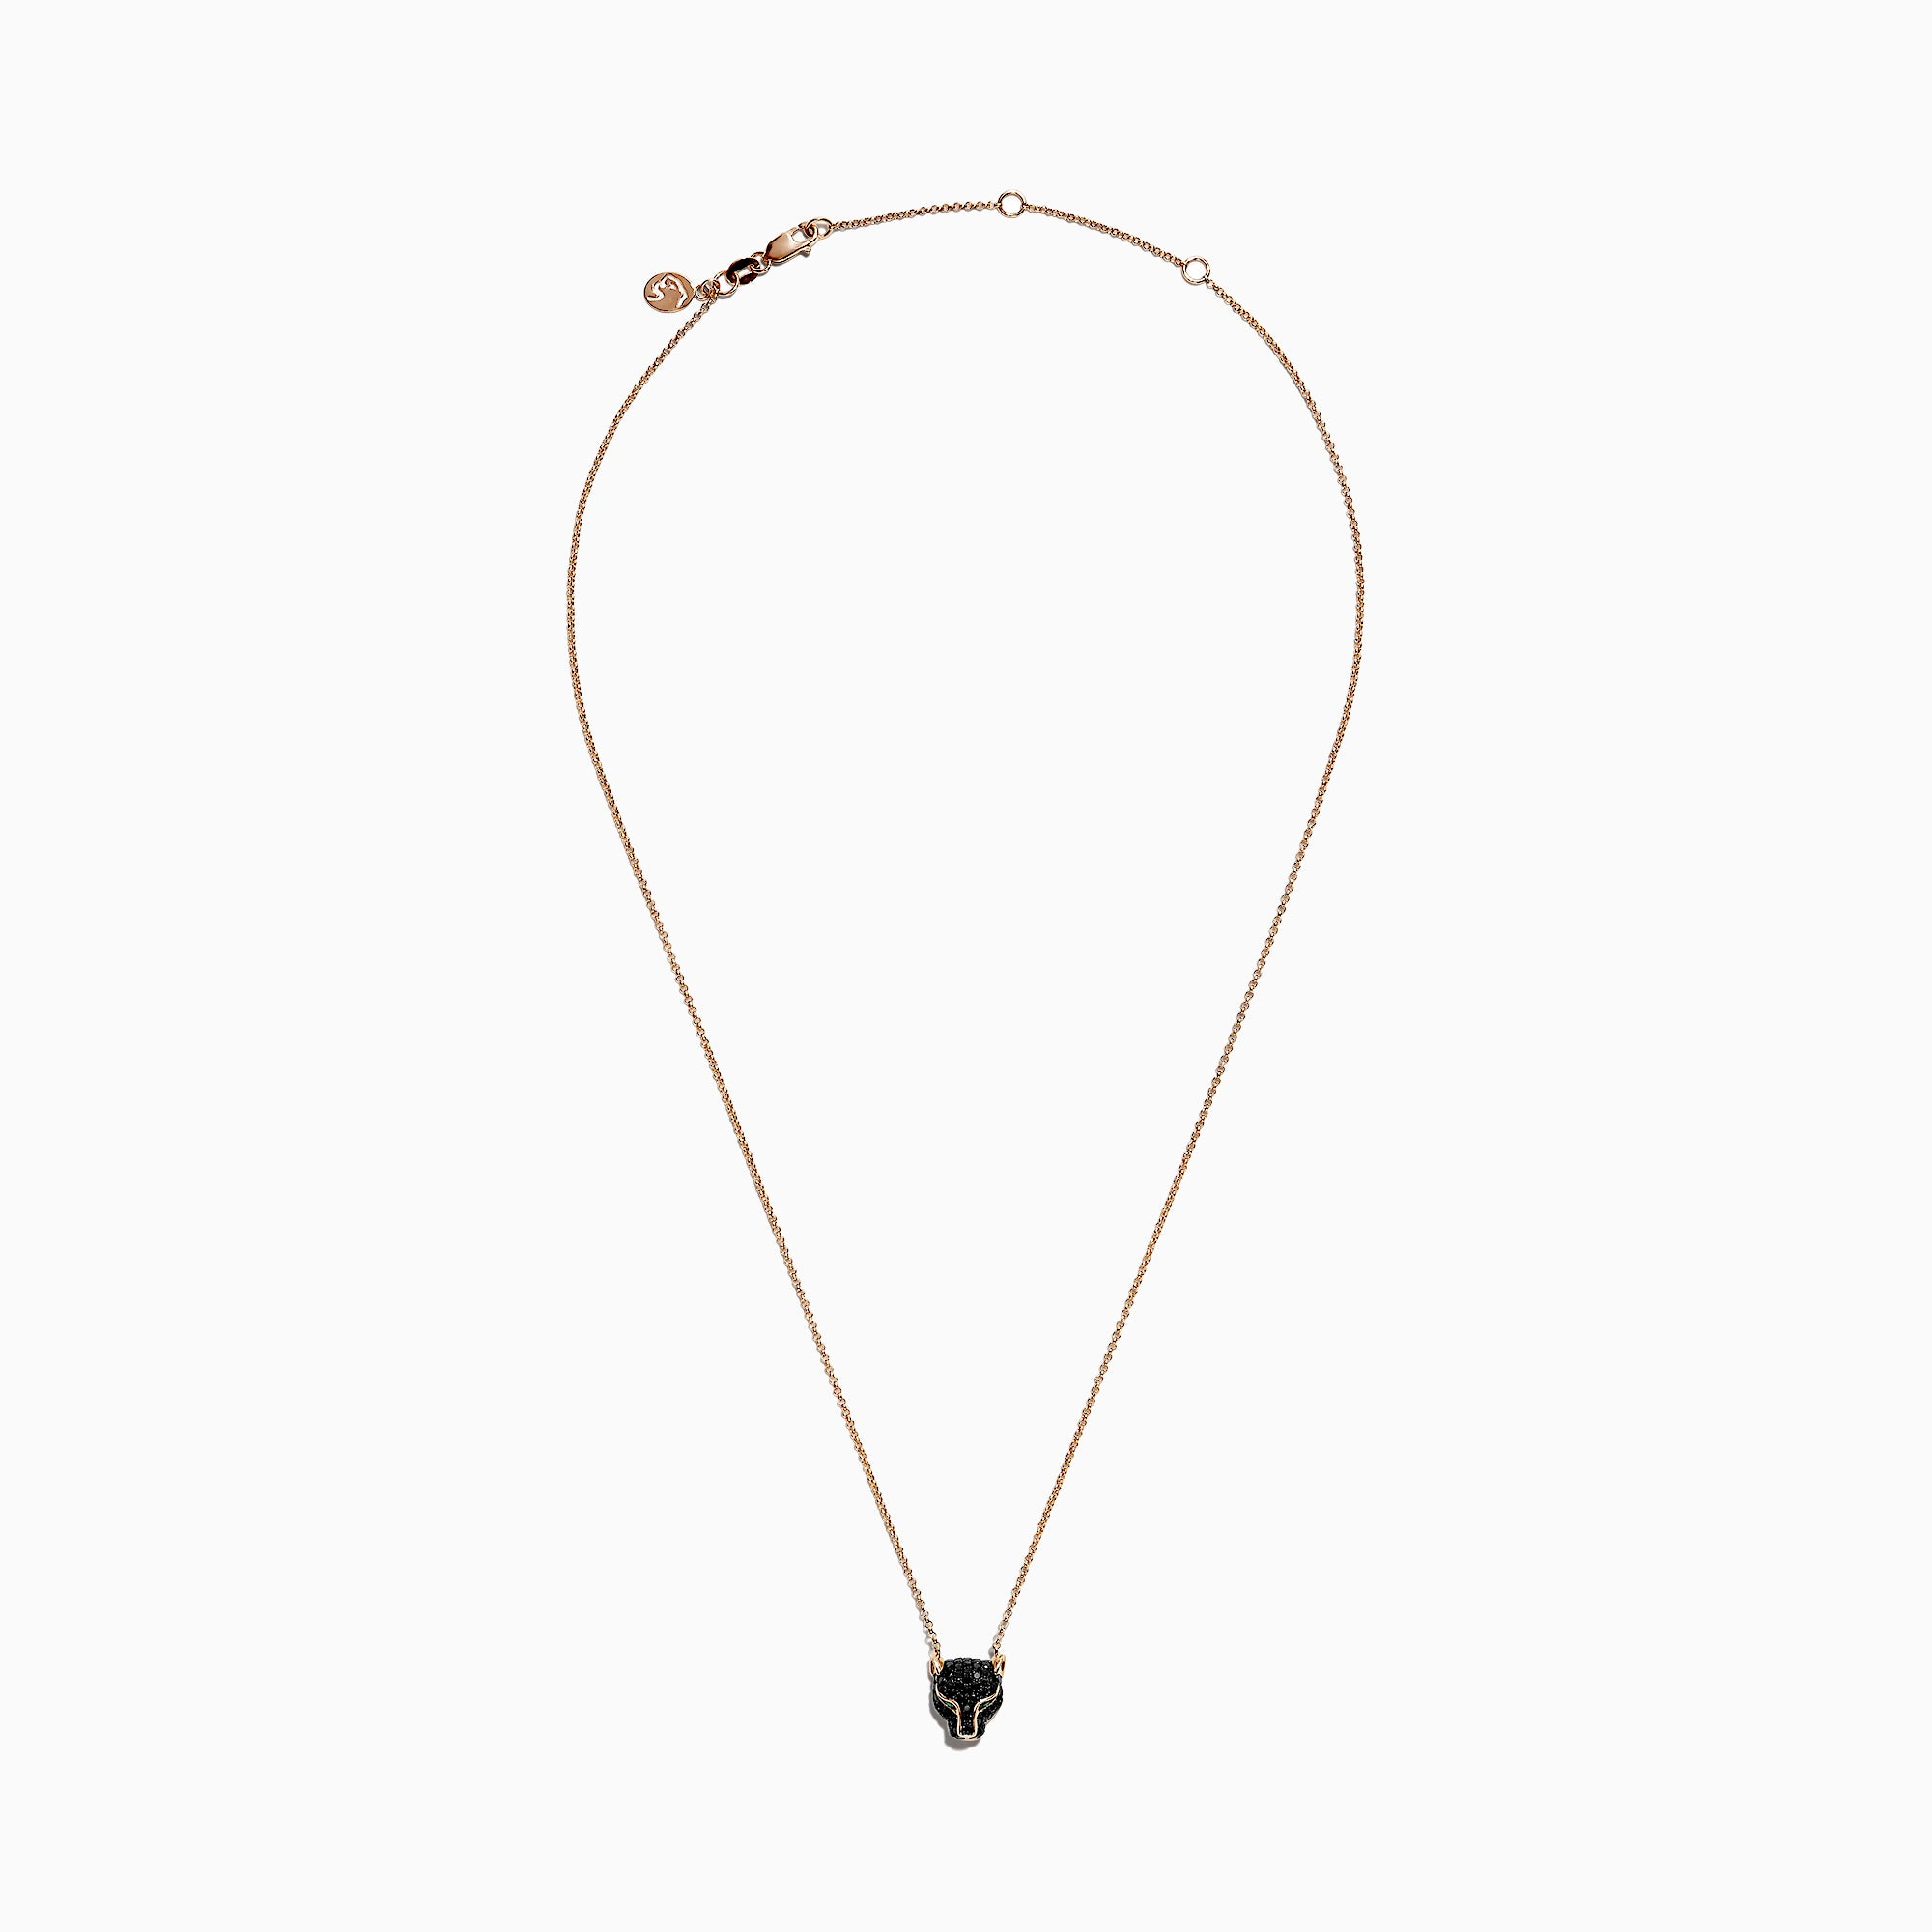 Effy Signature 14K Rose Gold Black Diamond & Emerald Necklace, 0.61 TCW